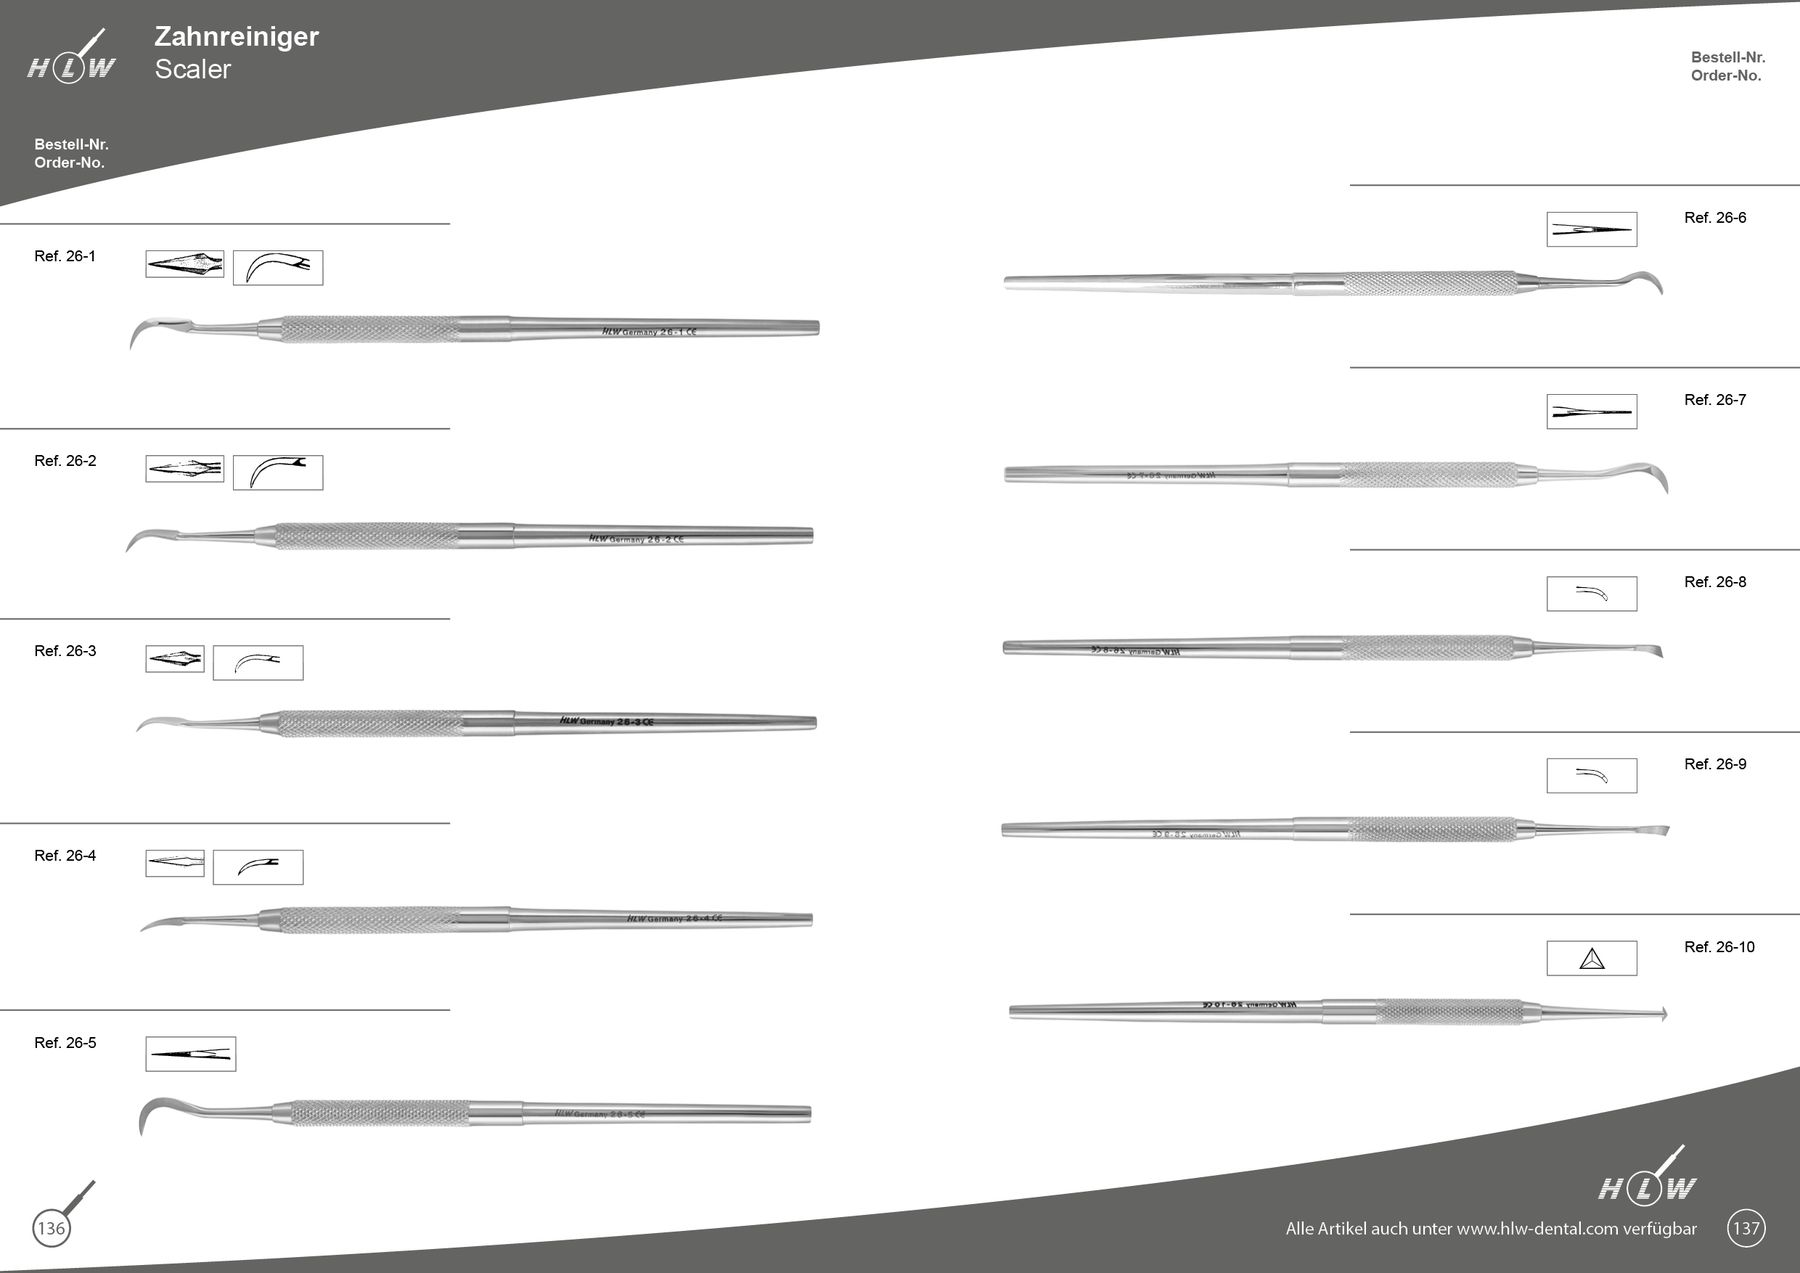 Groupe 26 - HLW Dental-Instruments Germany